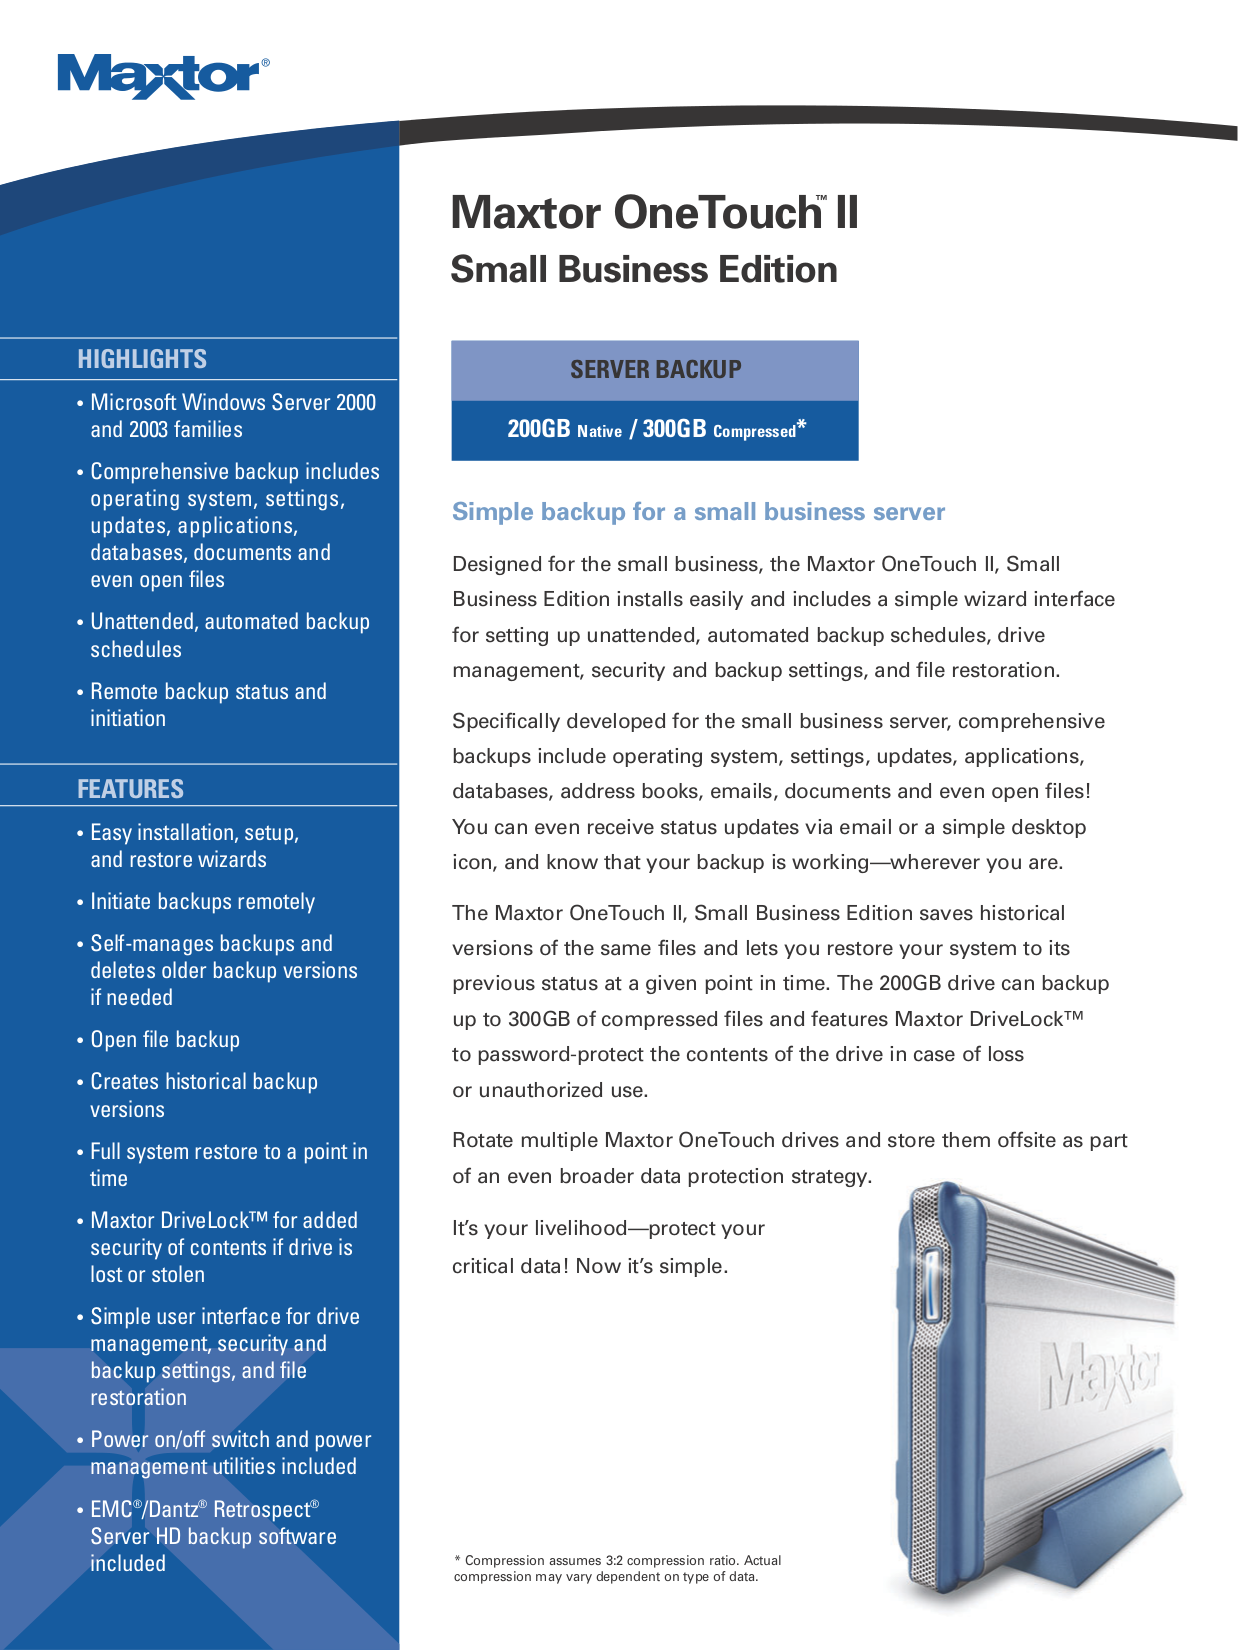 how to buy a small business server